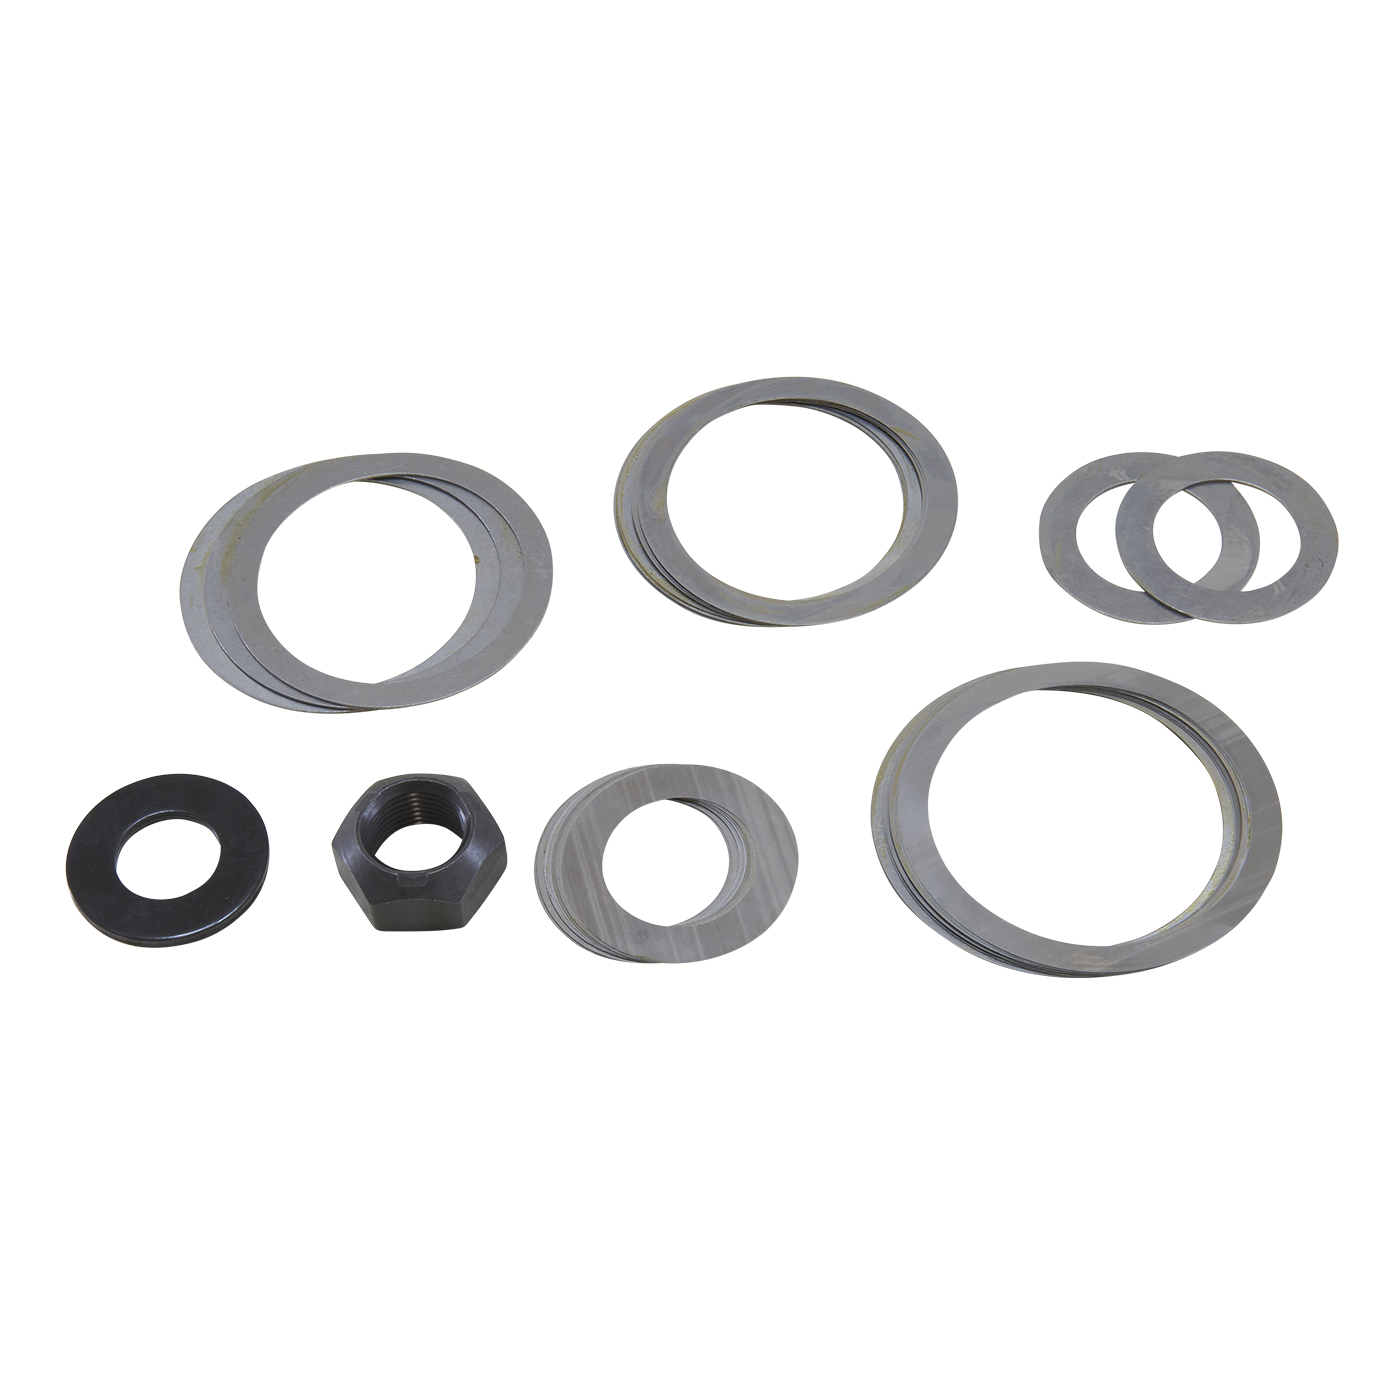 SK 707235 - Replacement complete shim kit for Dana 50